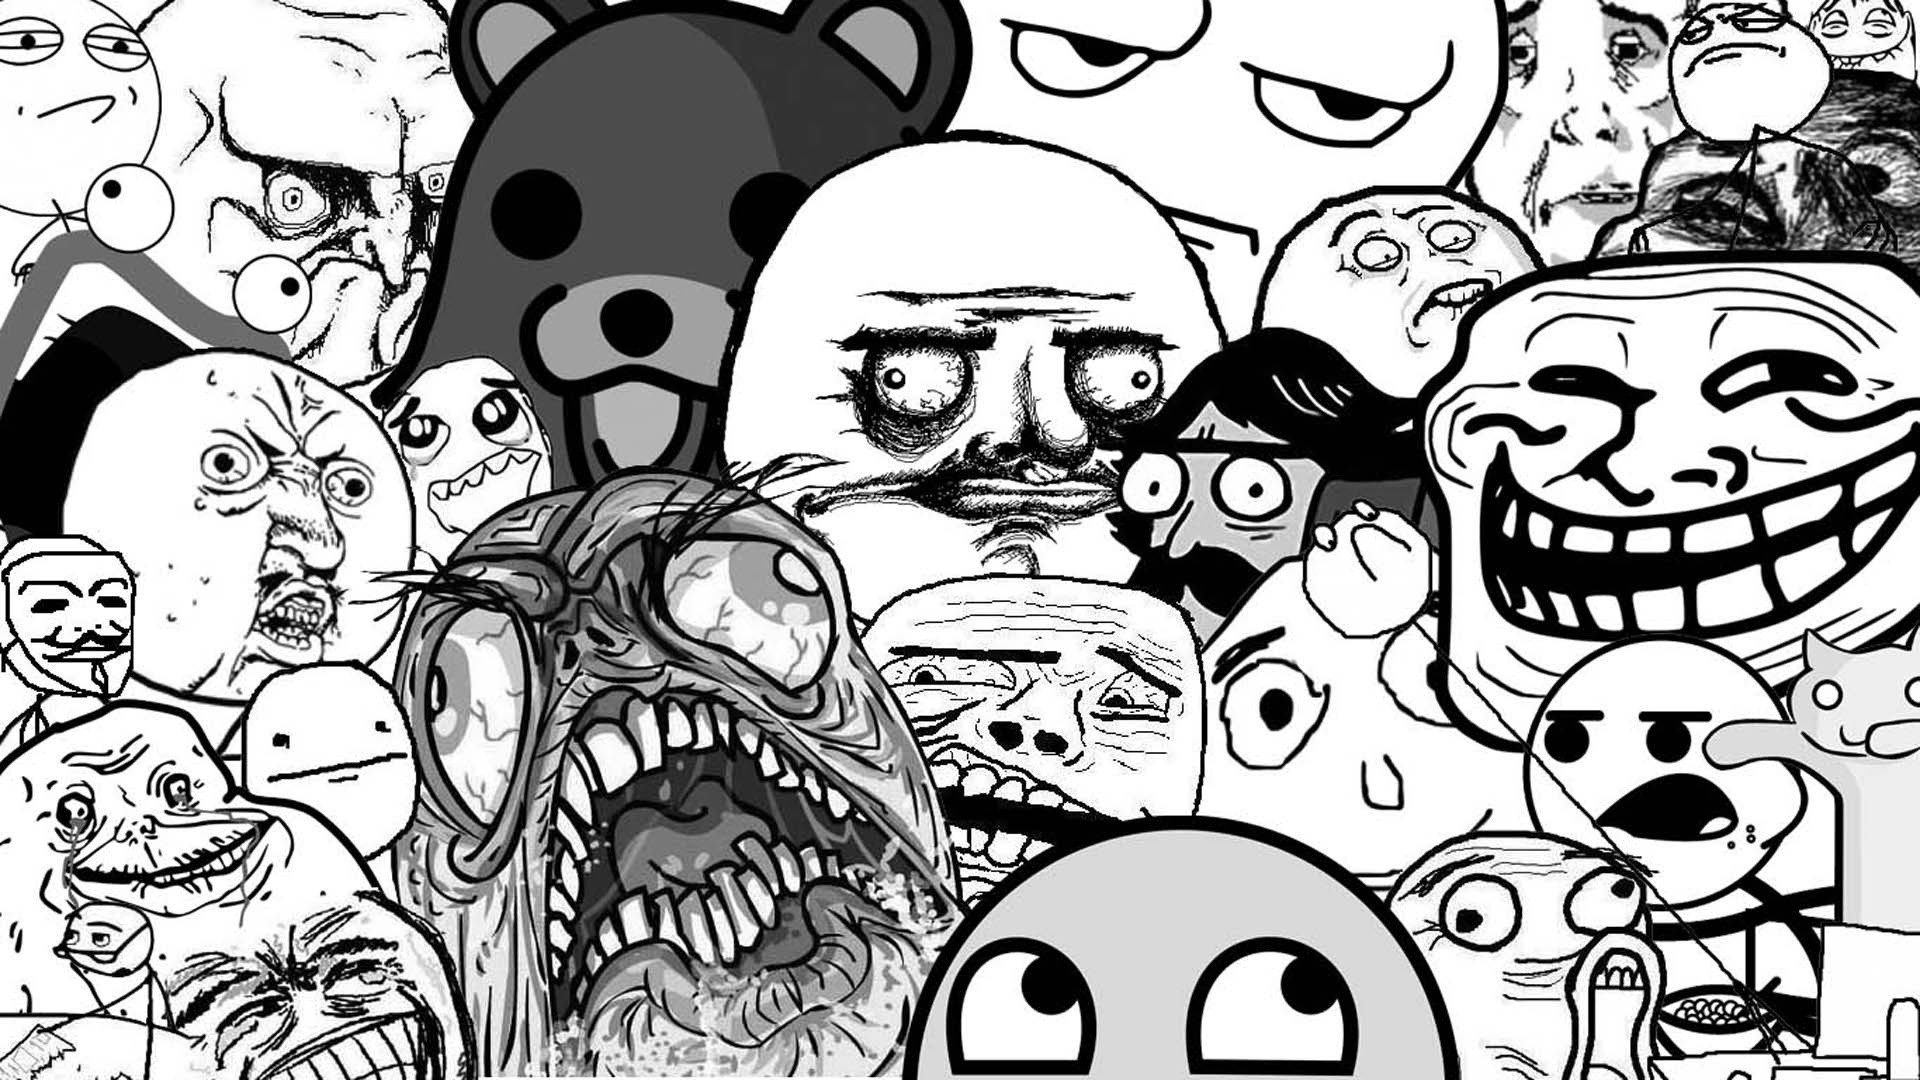 Awesome Face Cereal Guy Challenge Accepted Dad Fap Forever Alone Funny  Longcat Me Gusta Meme Memes No Okay Origin Pedobear Poker Rageface  Seriously Troll …